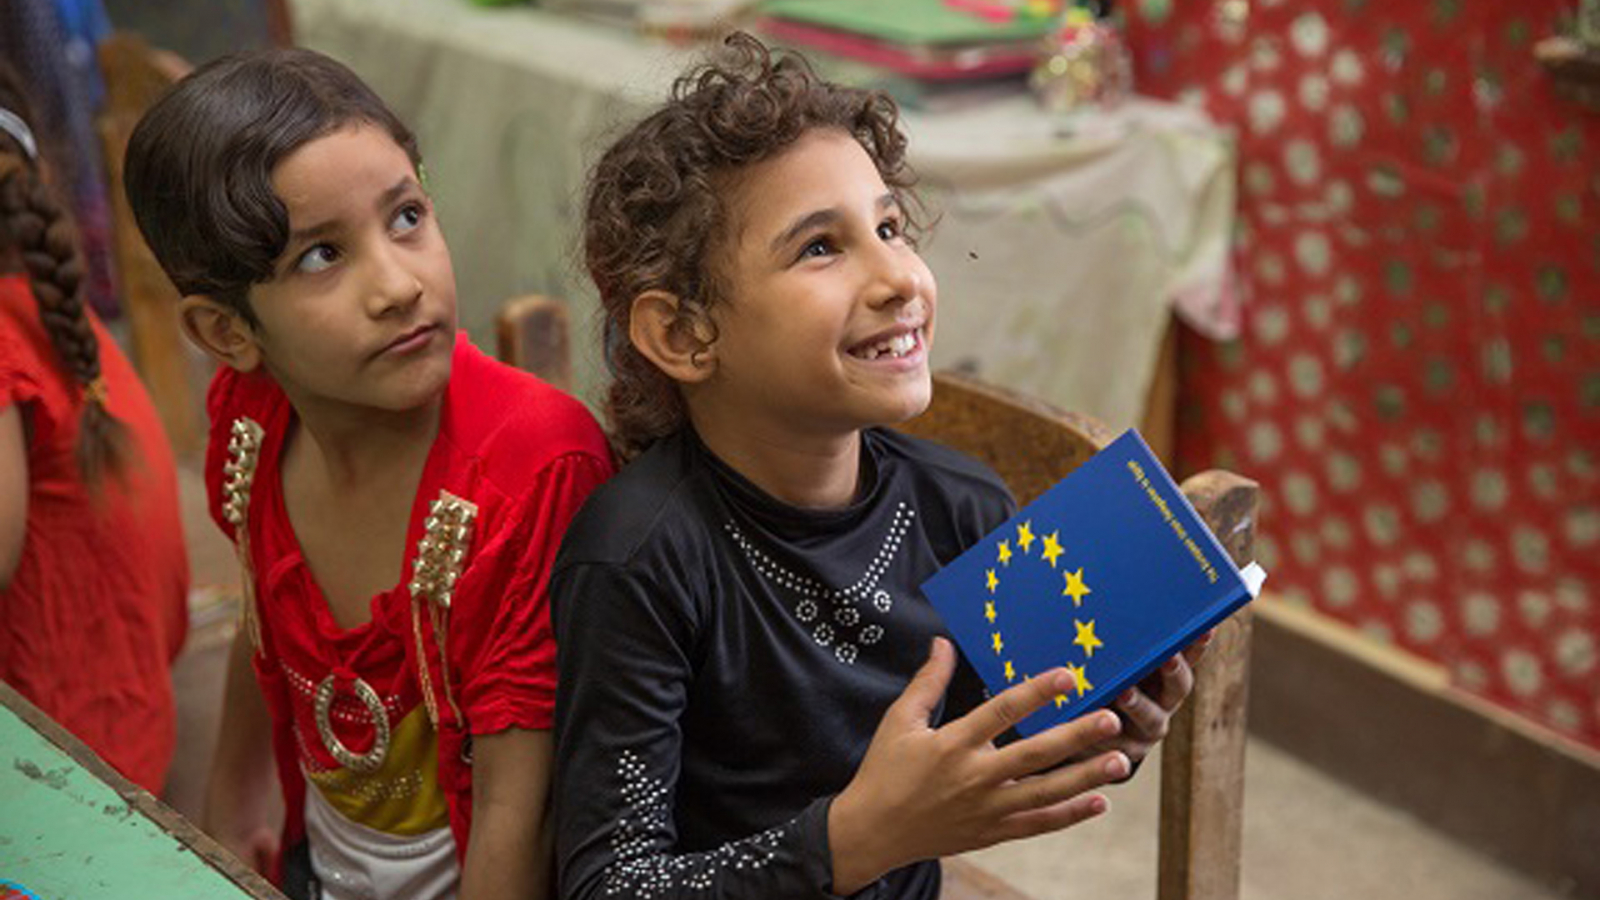 The European Union and the World Food Programme (WFP)